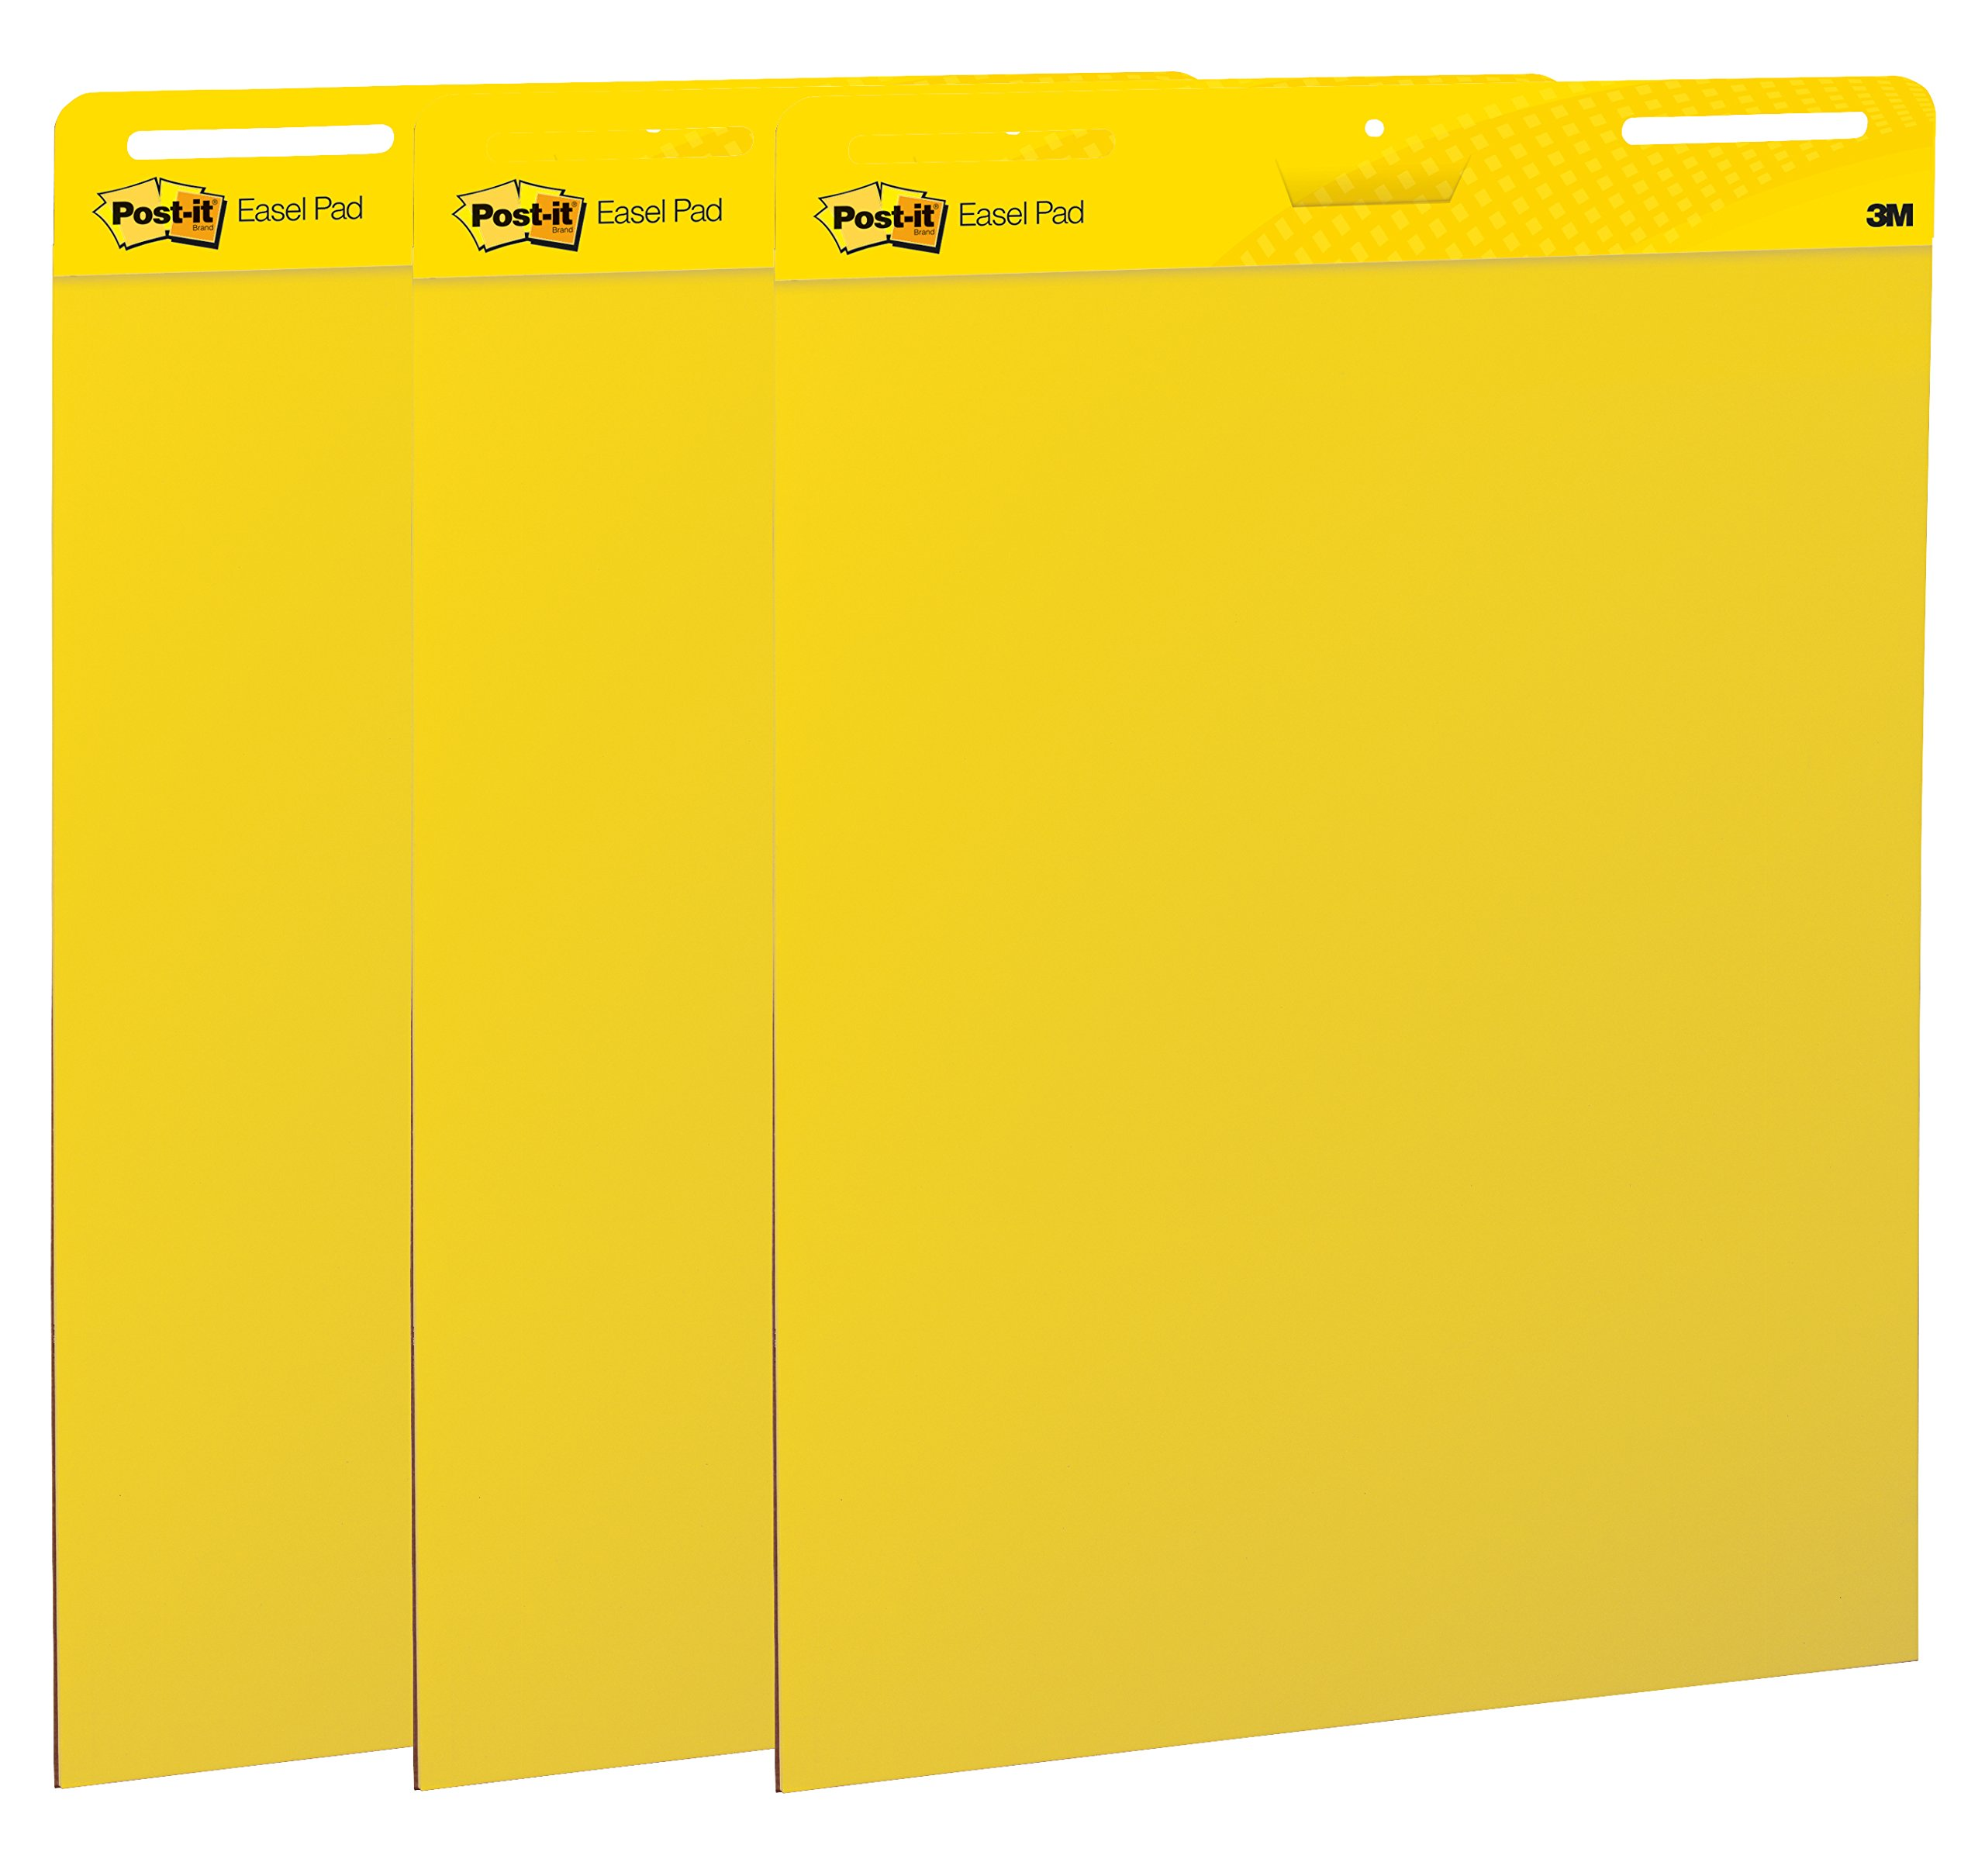 Post-it Super Sticky Easel Pad, 25 x 30 Inches, 25 Sheets/Pad, 3 Pads (559YW-3PK), Large Bright Yellow Premium Self Stick Flip Chart Paper, Super Sticking Power